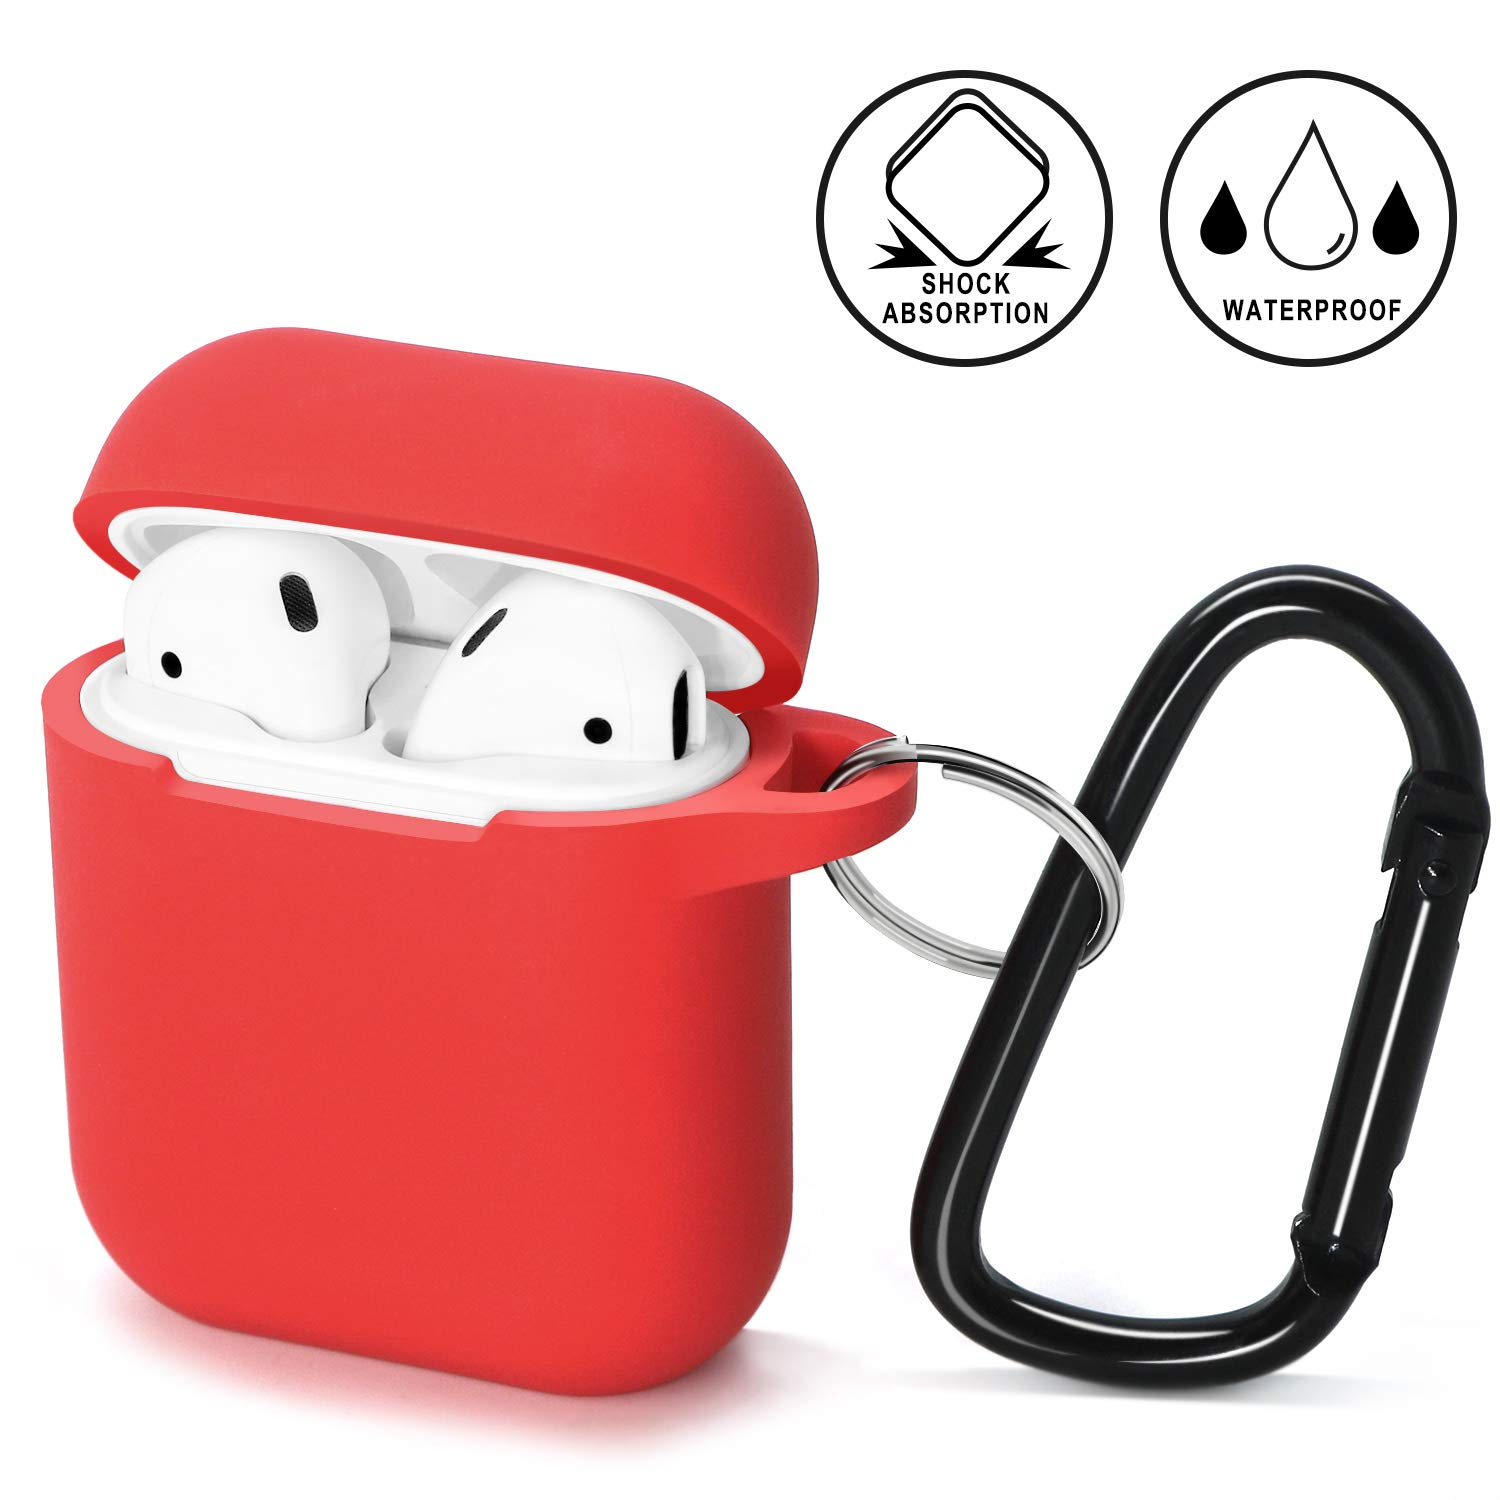 Compatible AirPods Case, Ambison Compatible AirPod Case Silicone Protective Cover Skin Charging Case Holder Case Anti-Lost Carabiner (Red)